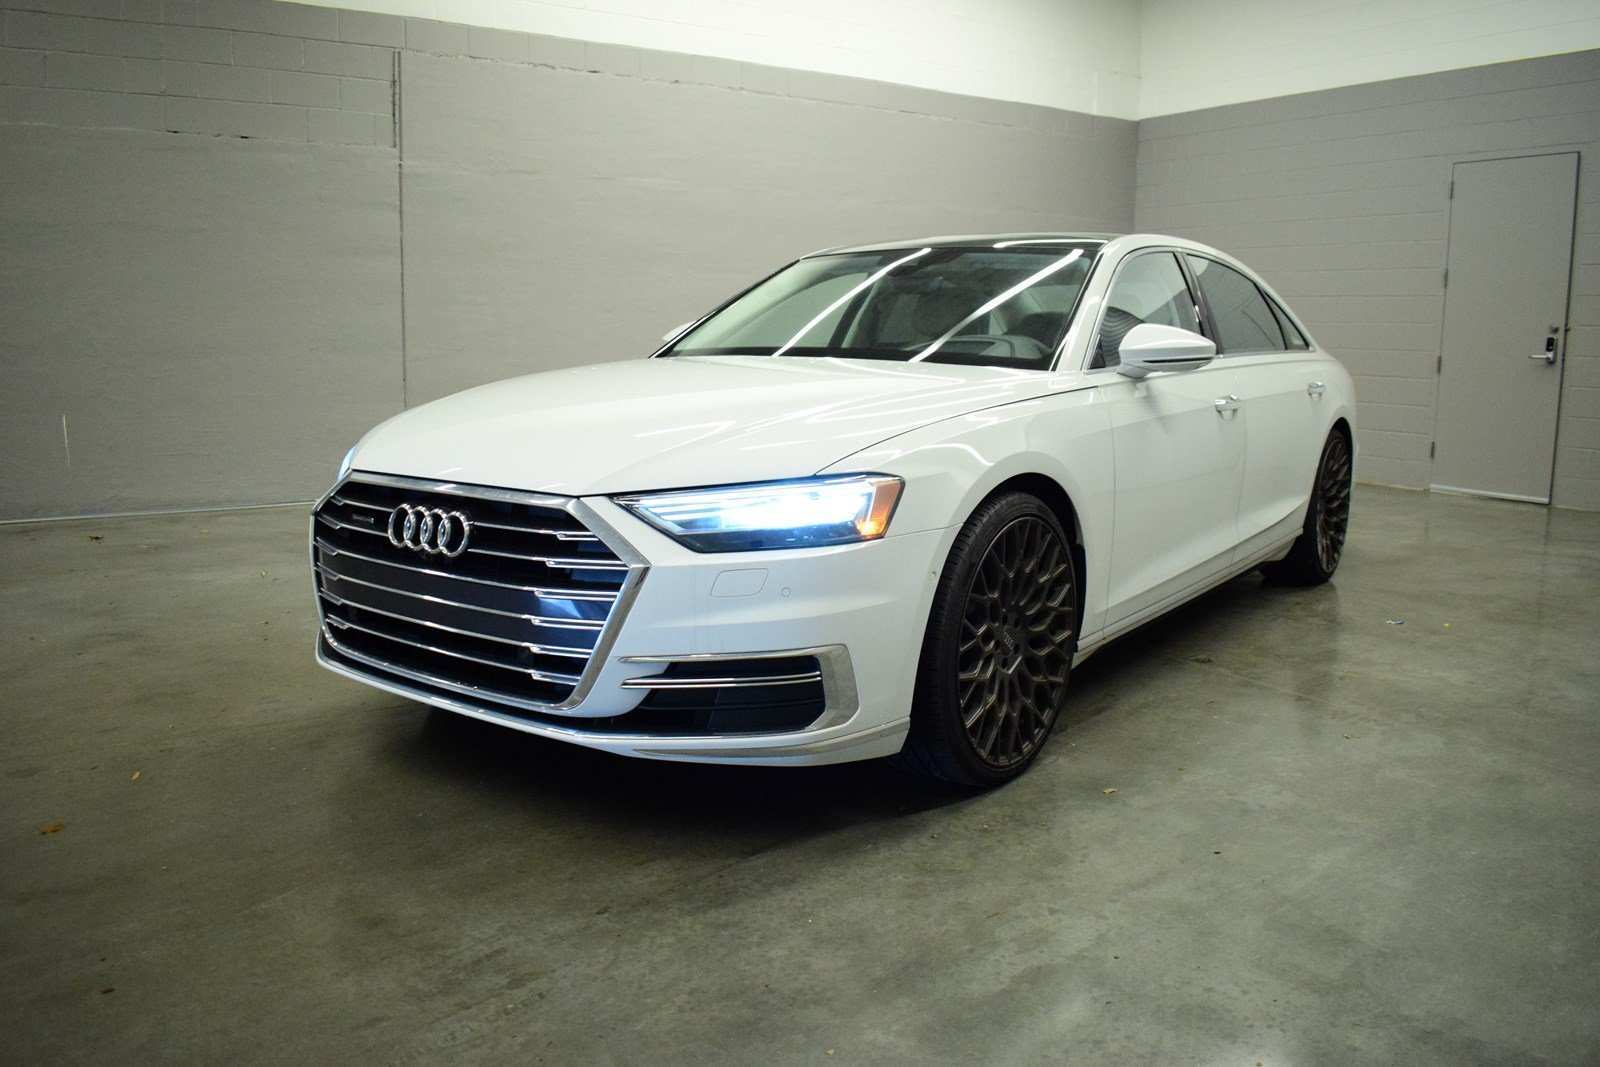 81 New 2019 Audi A8 L In Usa Images